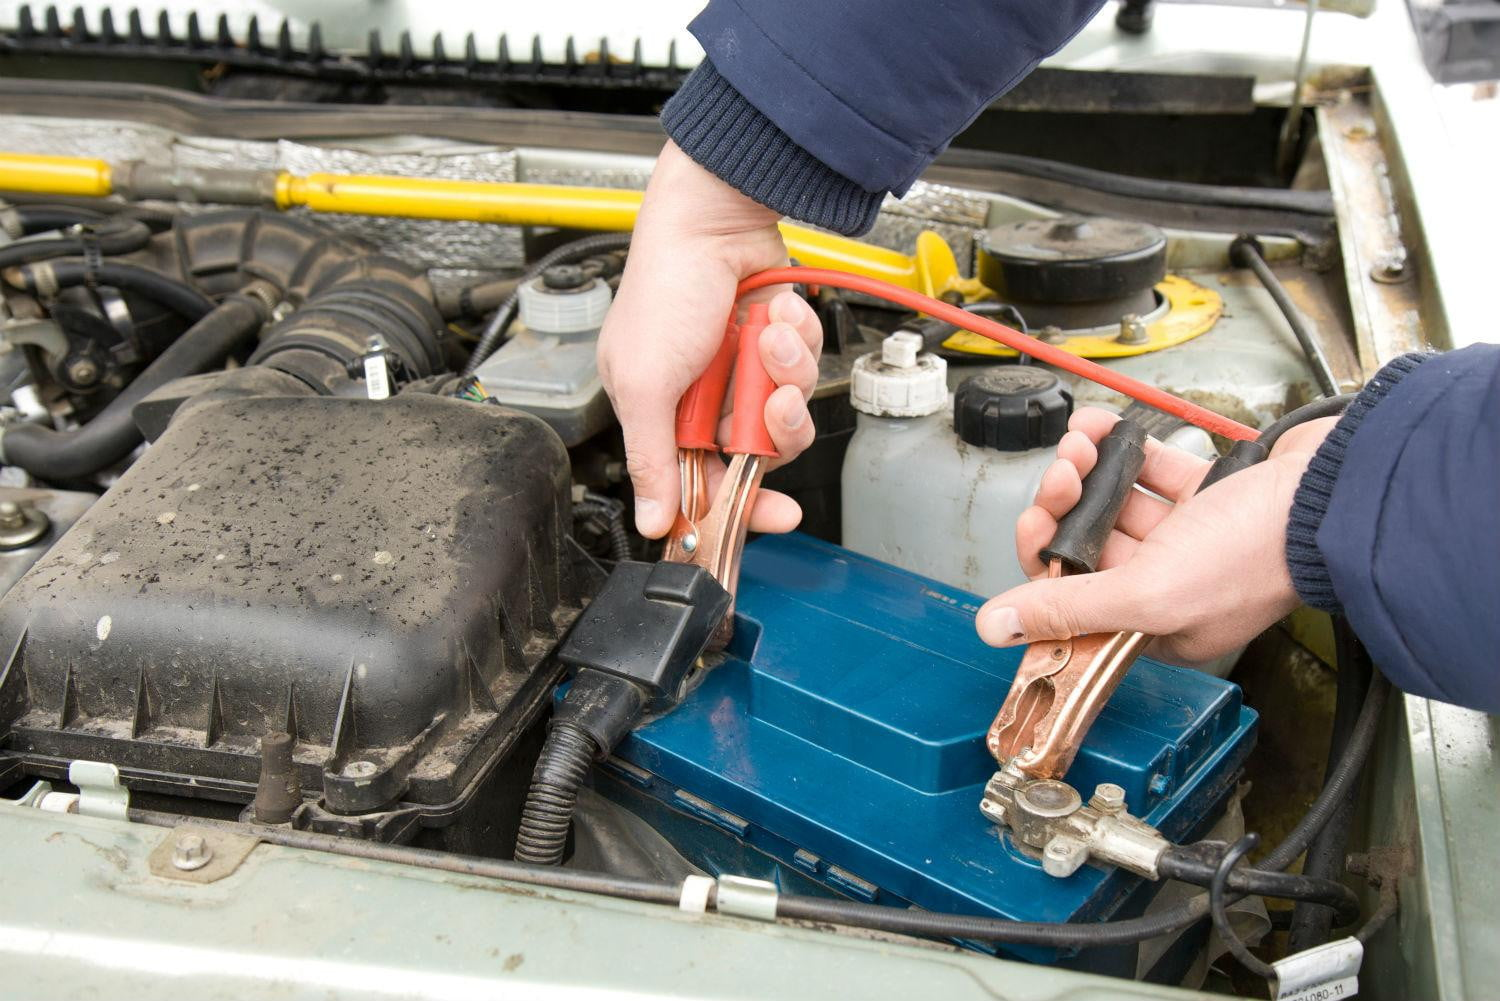 How To Jump A Car Battery The Correct Way An Explainer